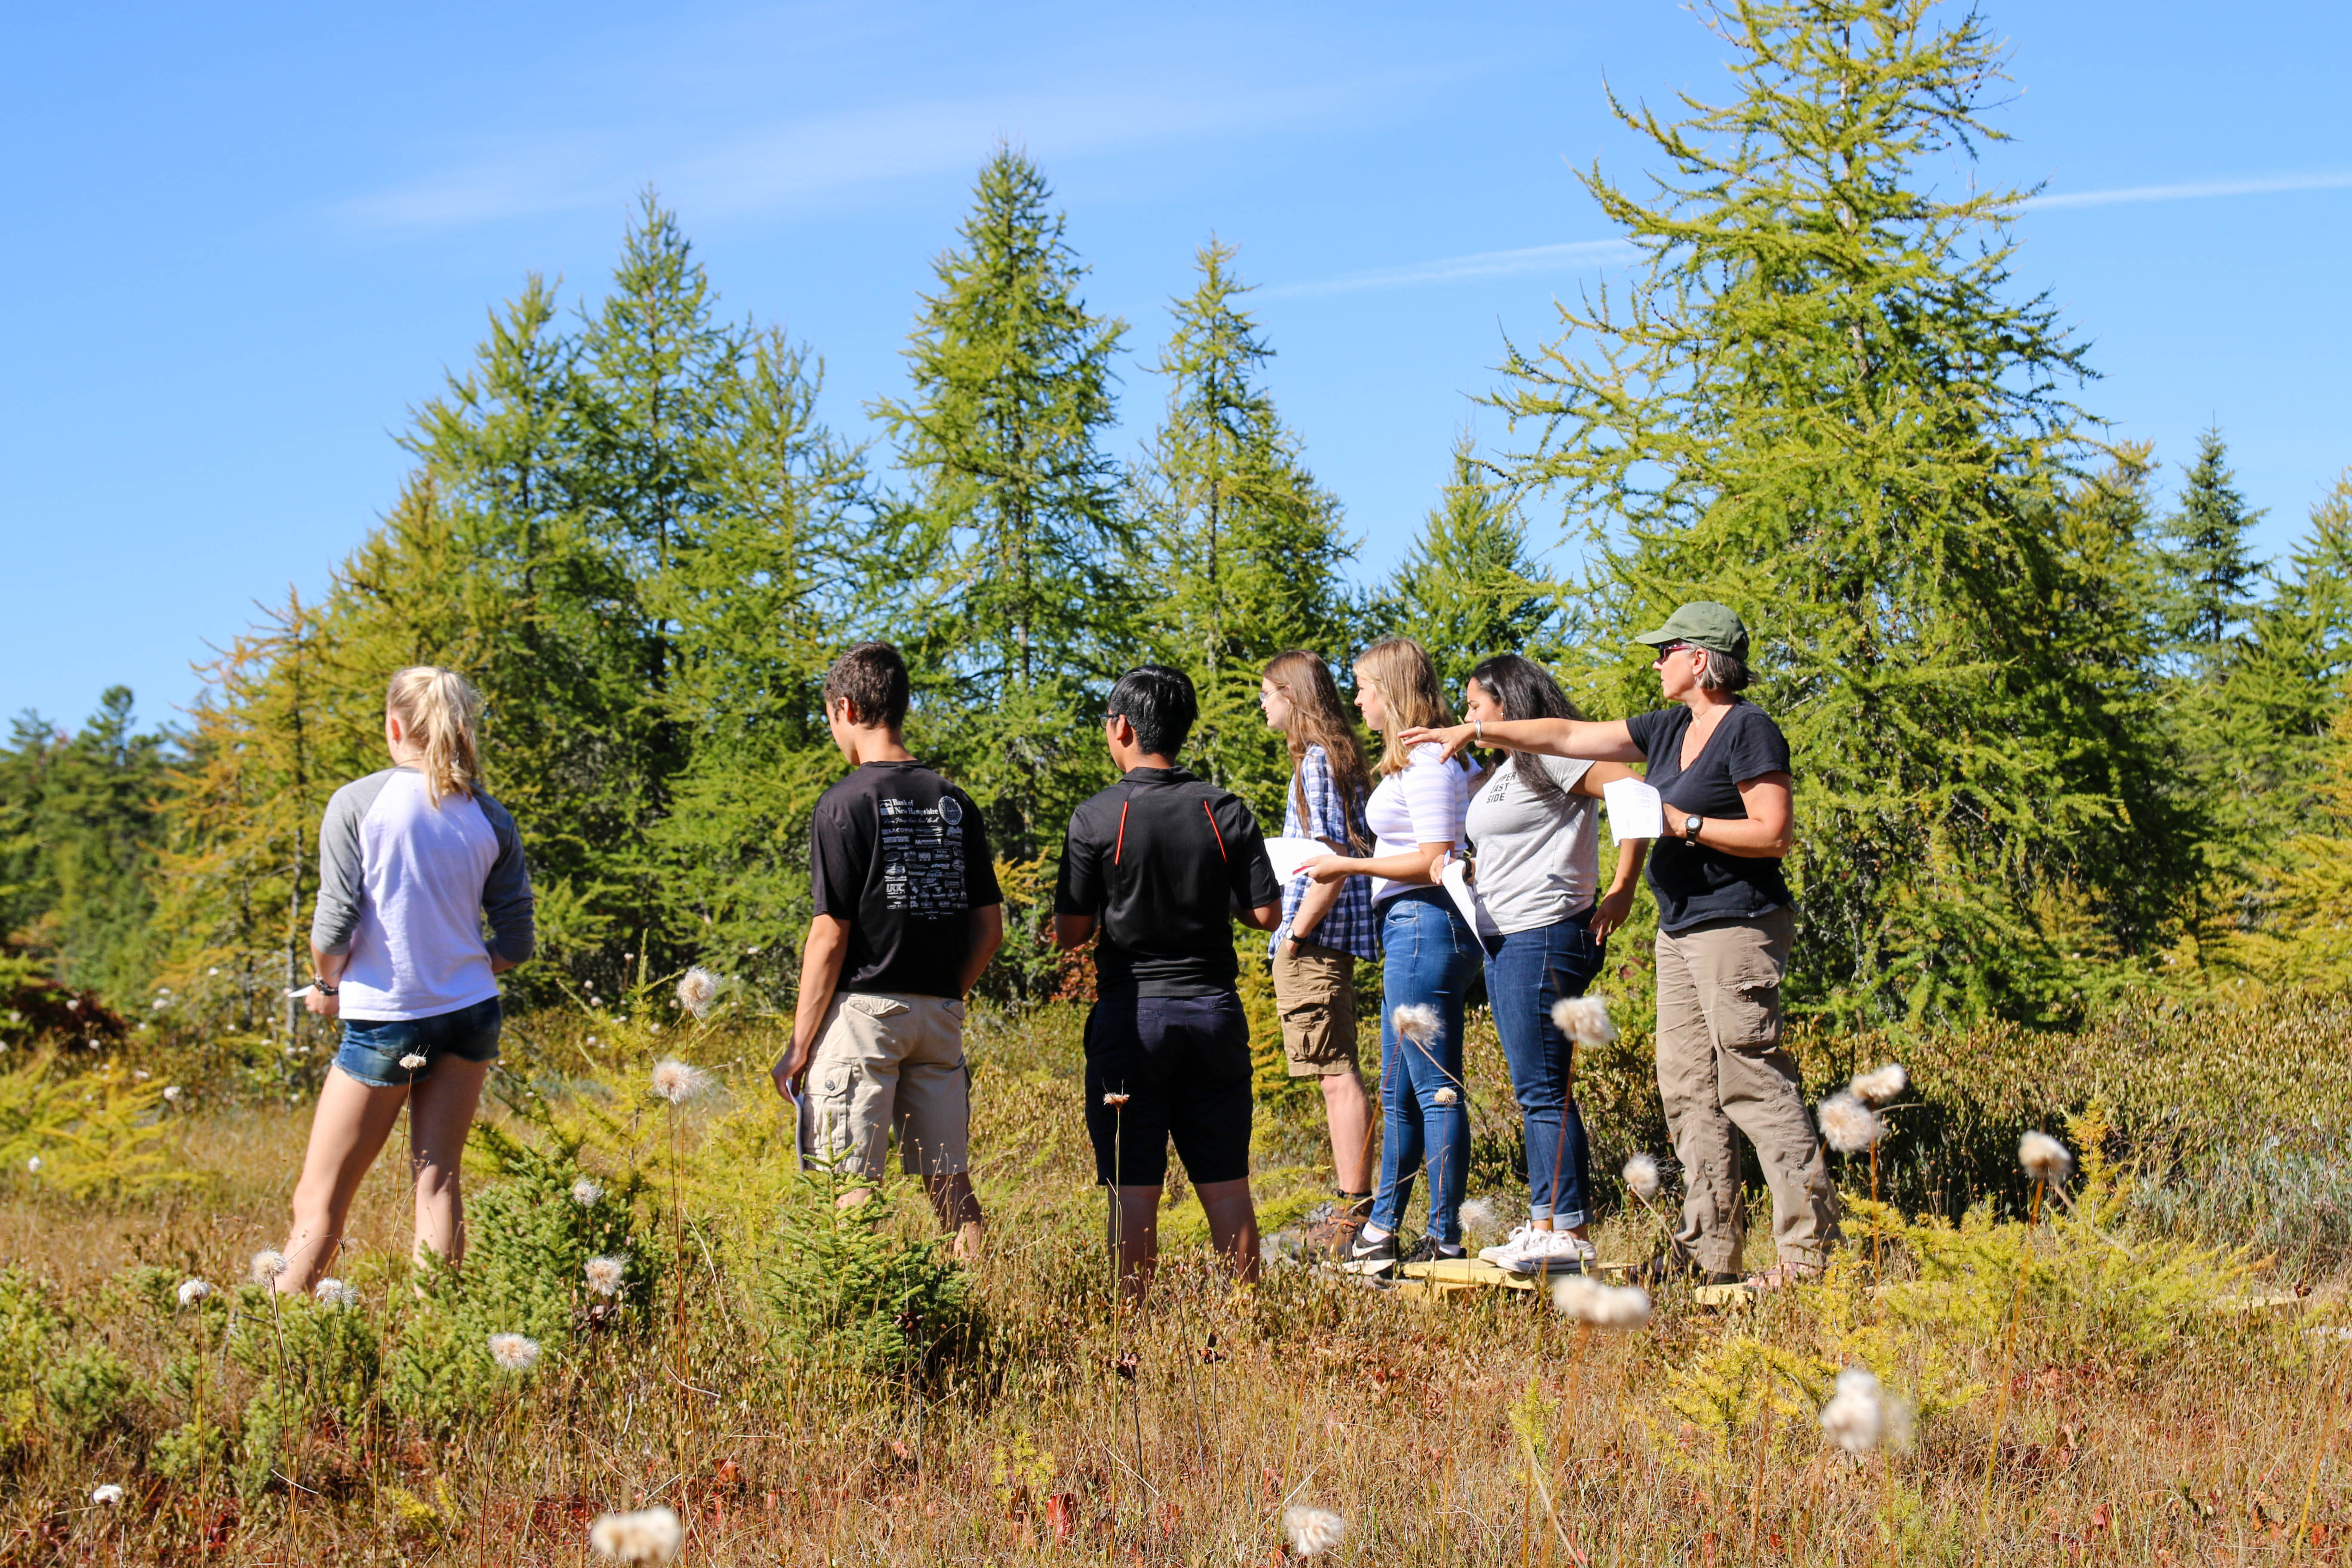 Proctor Academy Boarding School New England Experiential Learning